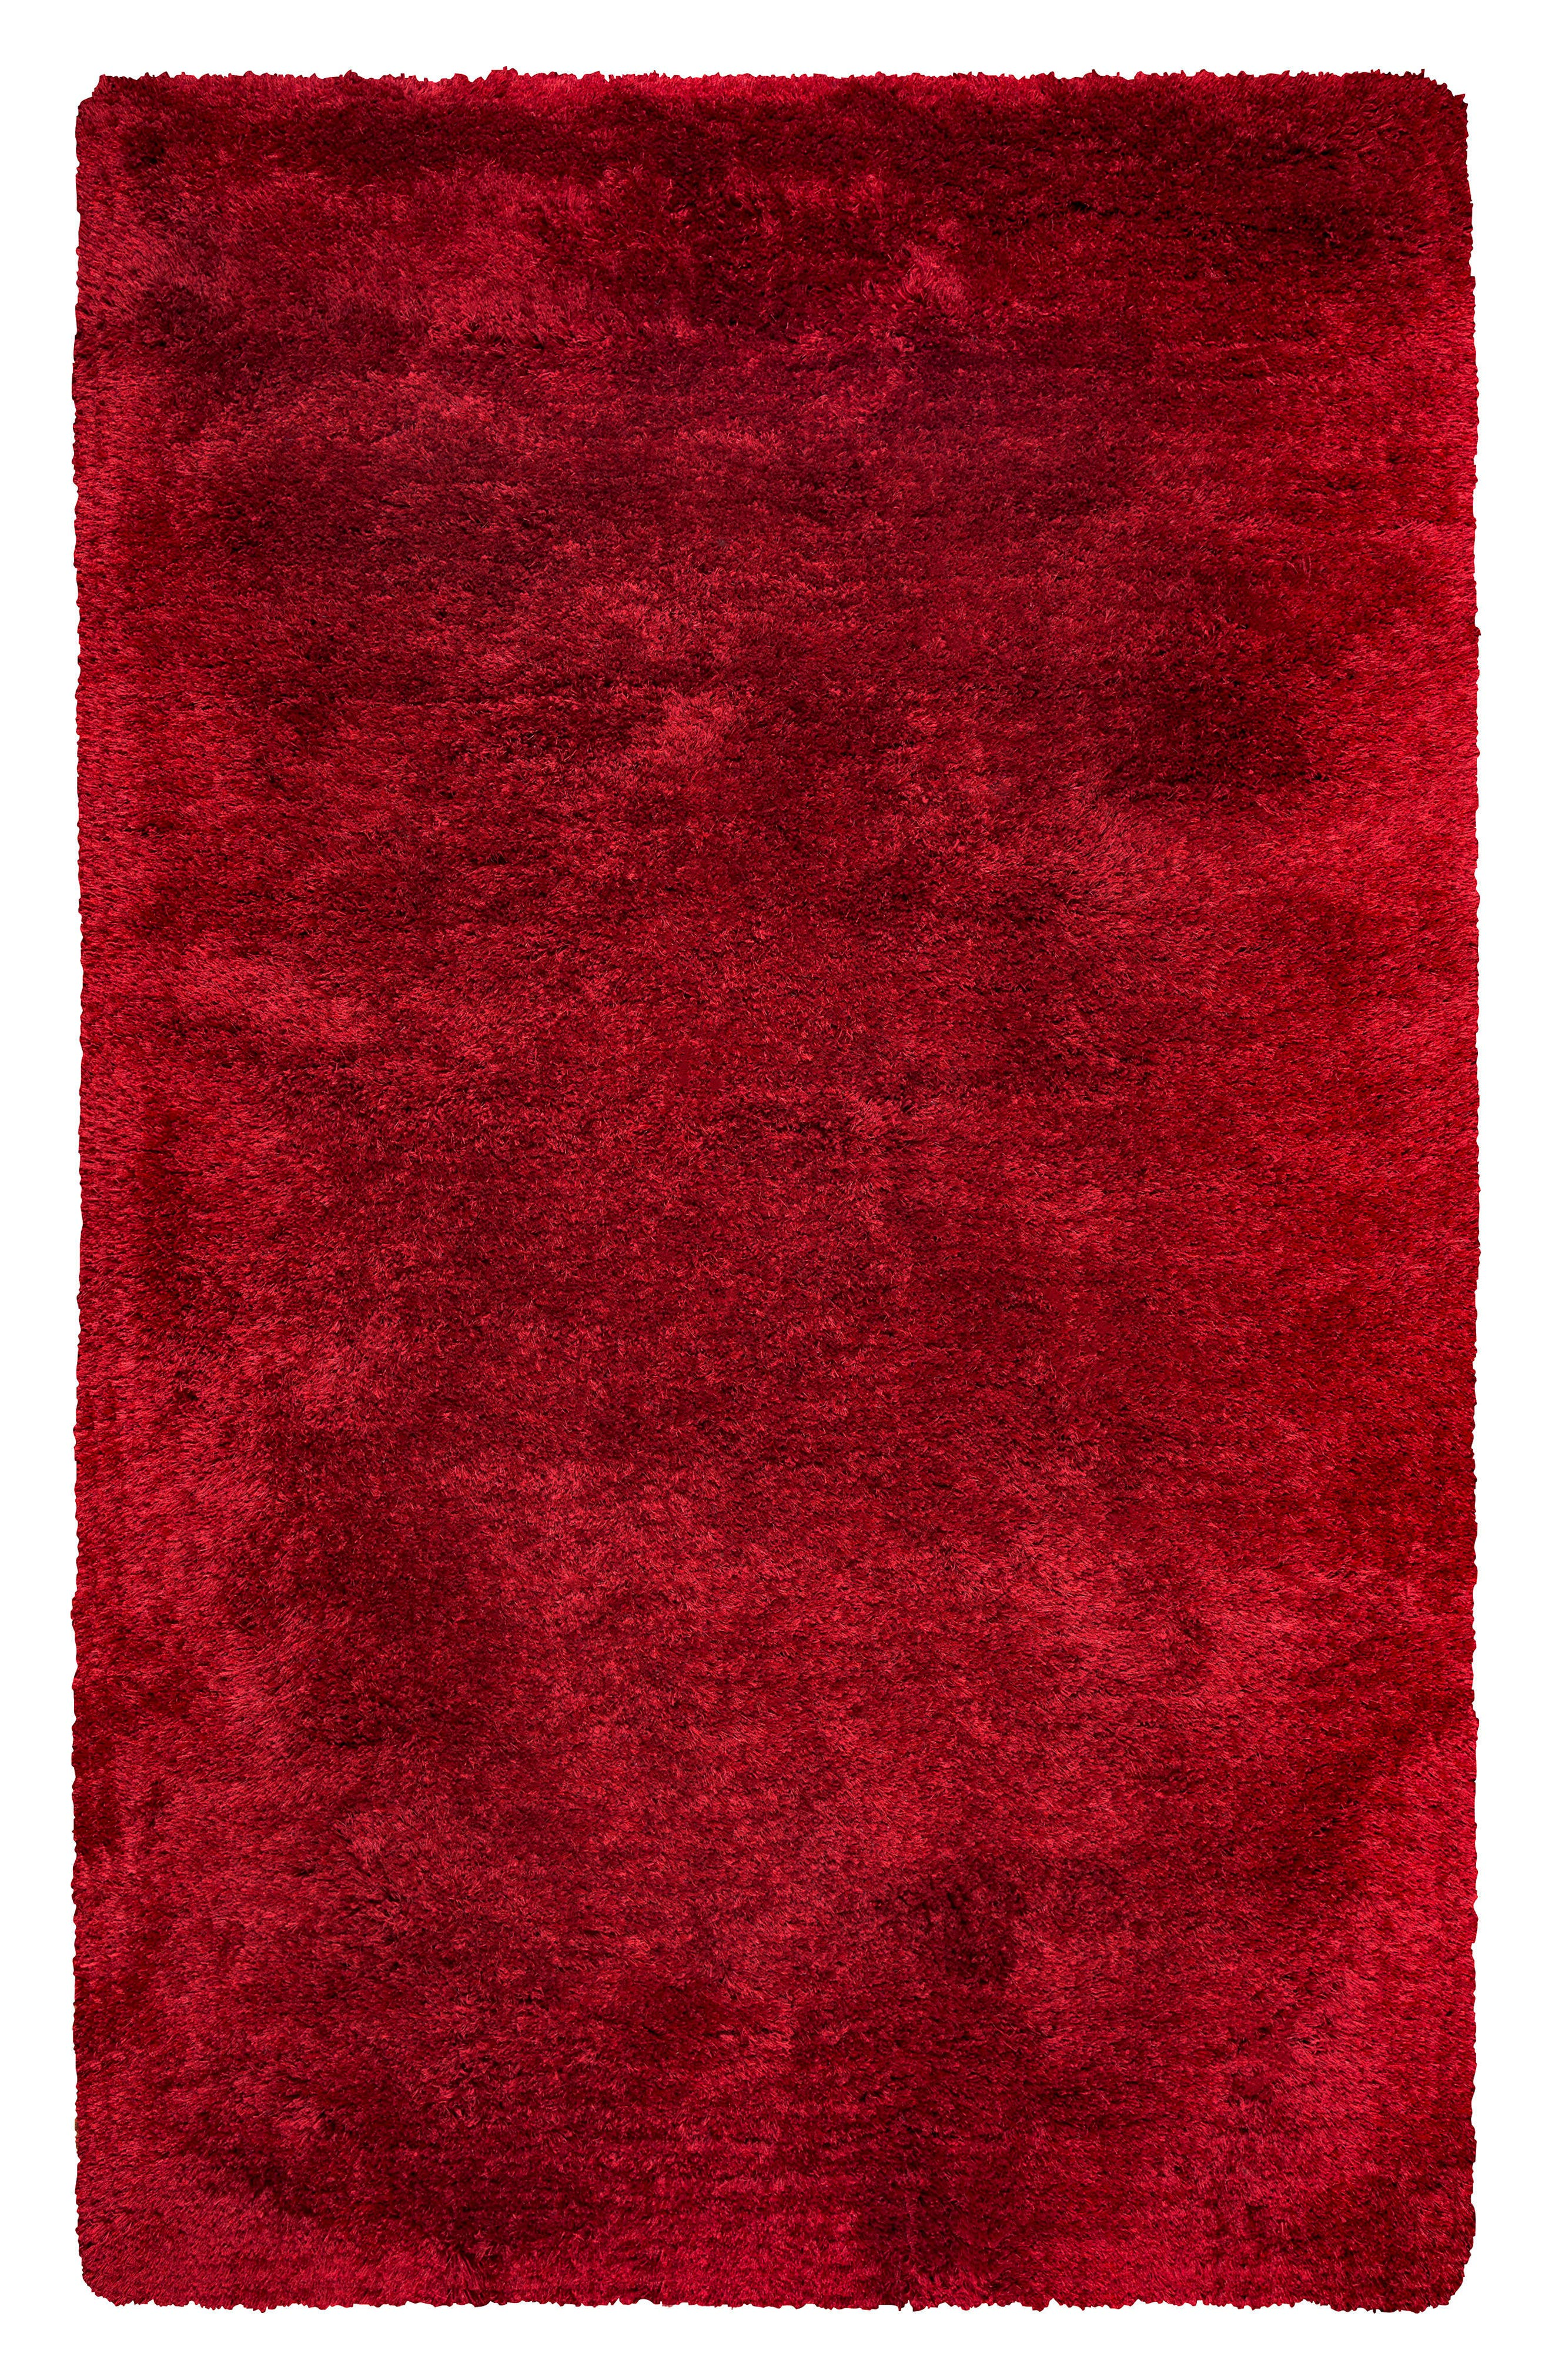 Plush Shag Hand Tufted Area Rug,                             Main thumbnail 1, color,                             Red